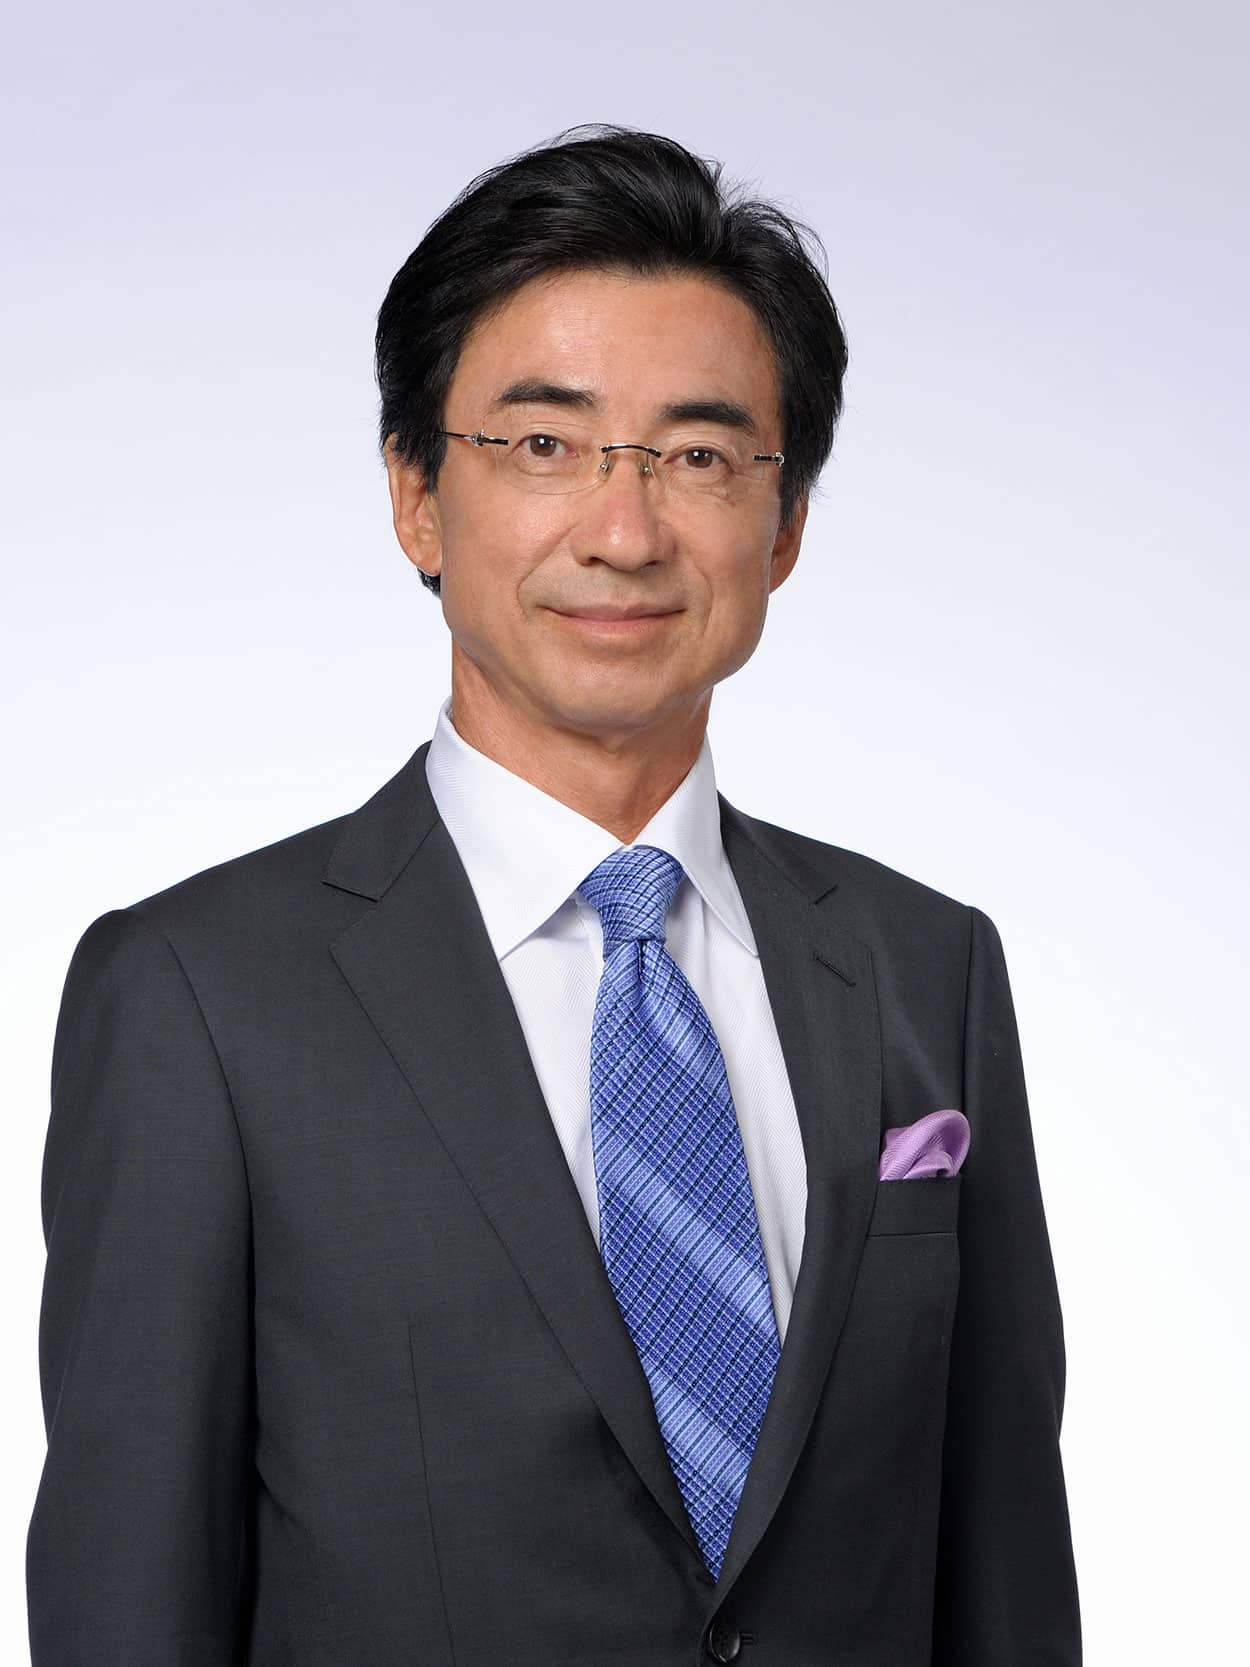 Mr. Hattori, CEO of Seiko